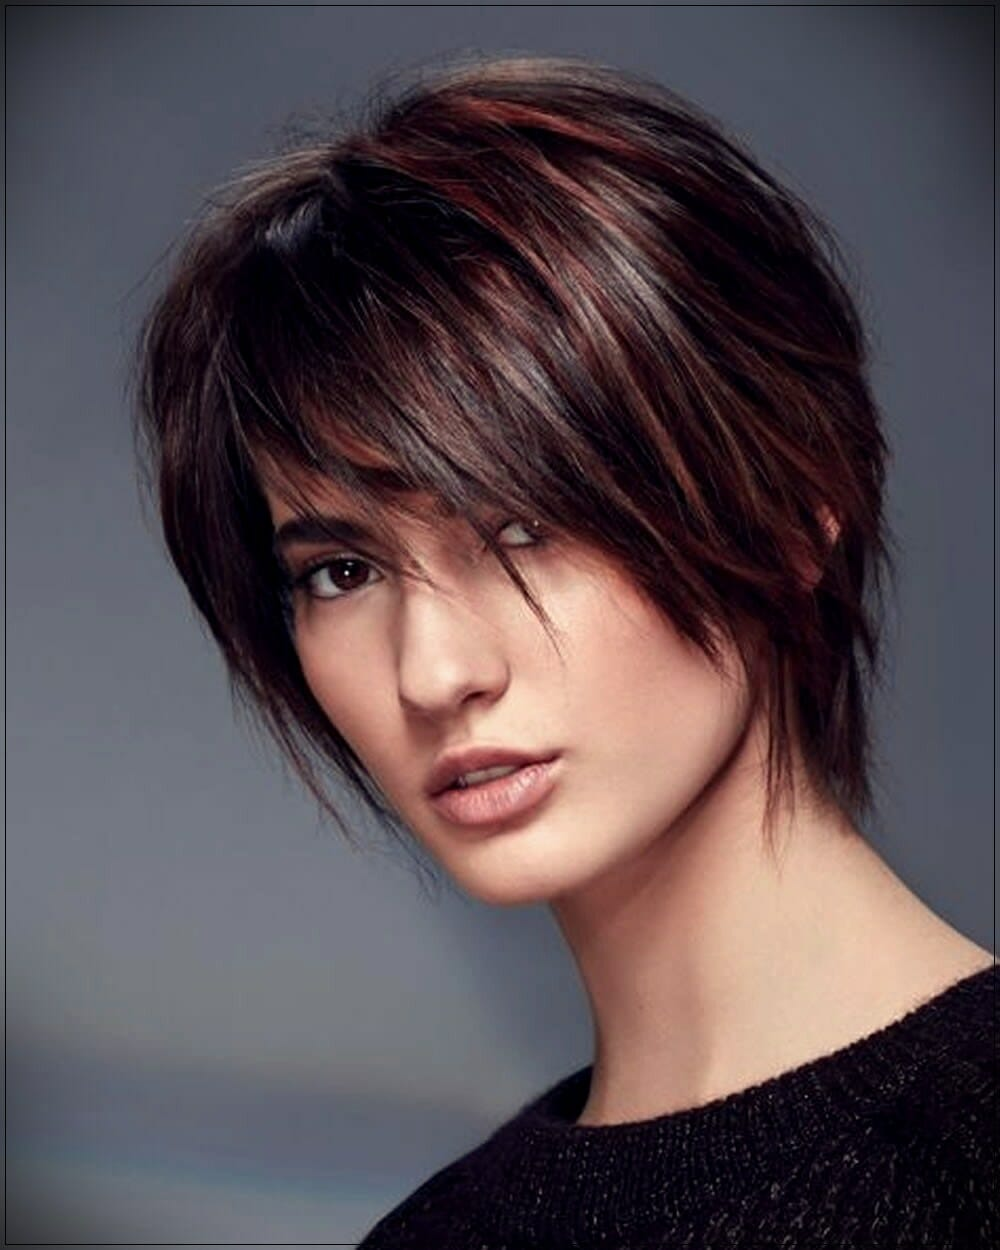 short hairstyles for round faces 8 - Correct hairstyles for your face type